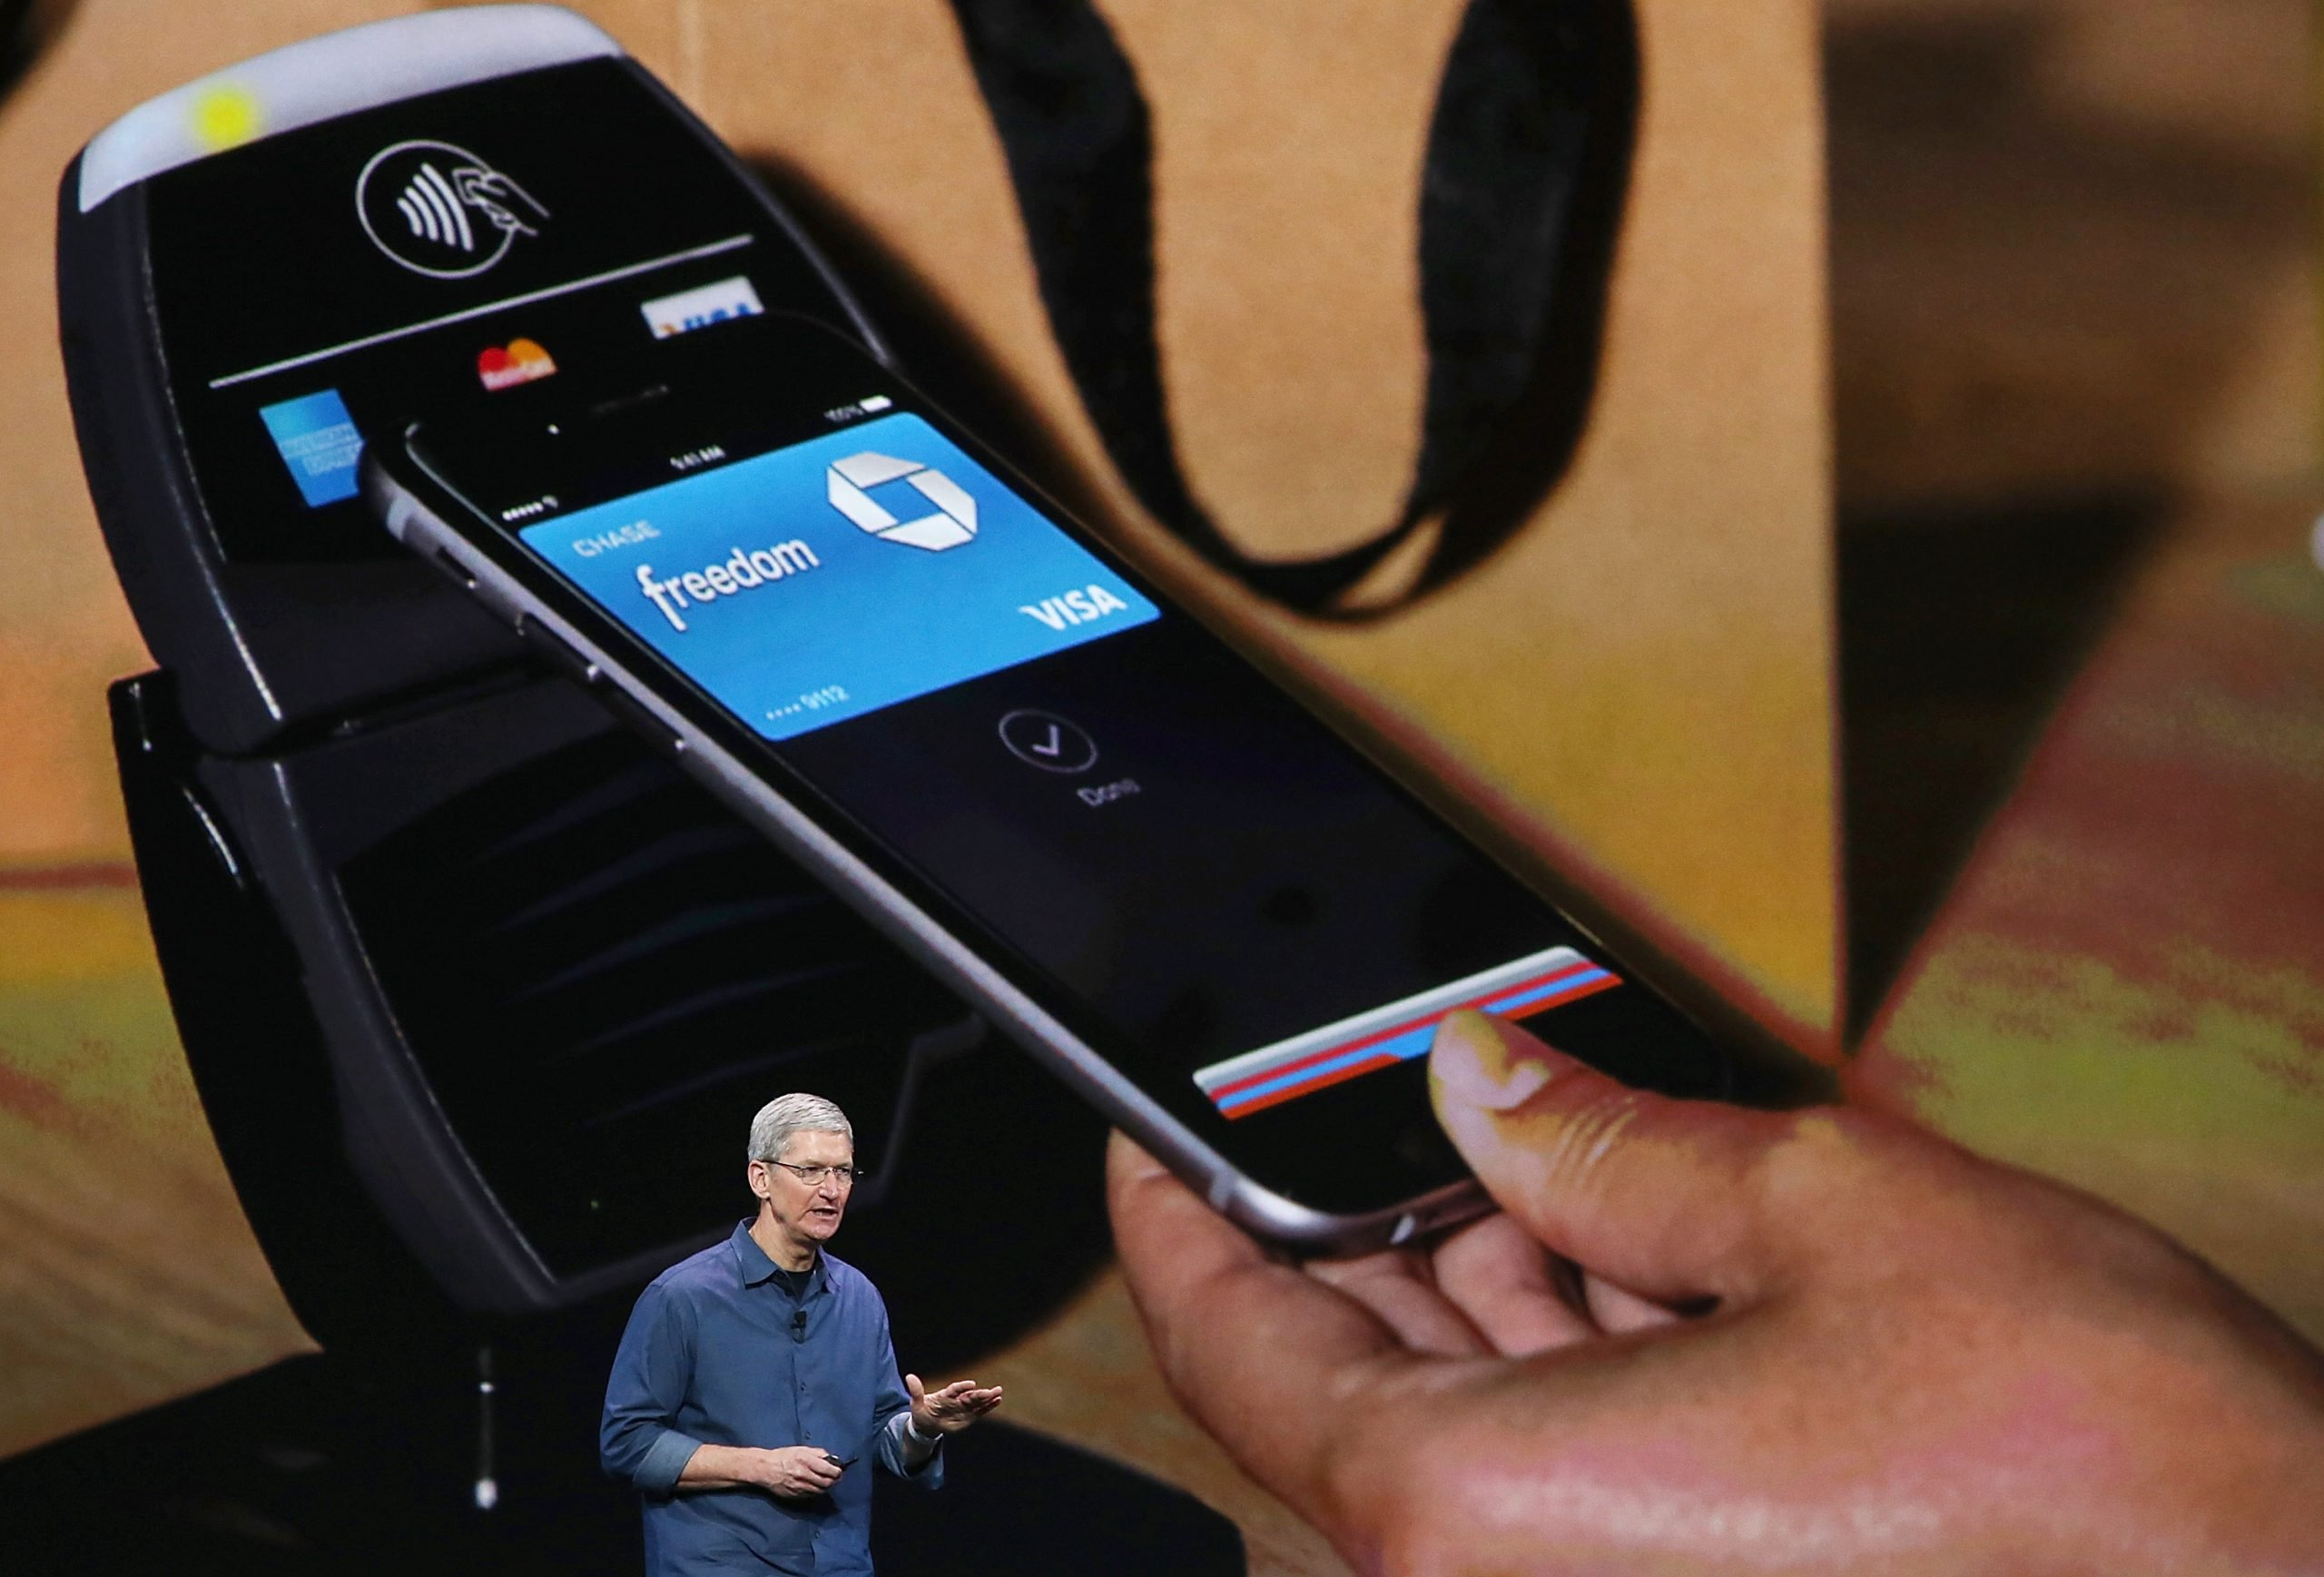 PayPal to Collaborate on Apple's Mobile Payment System